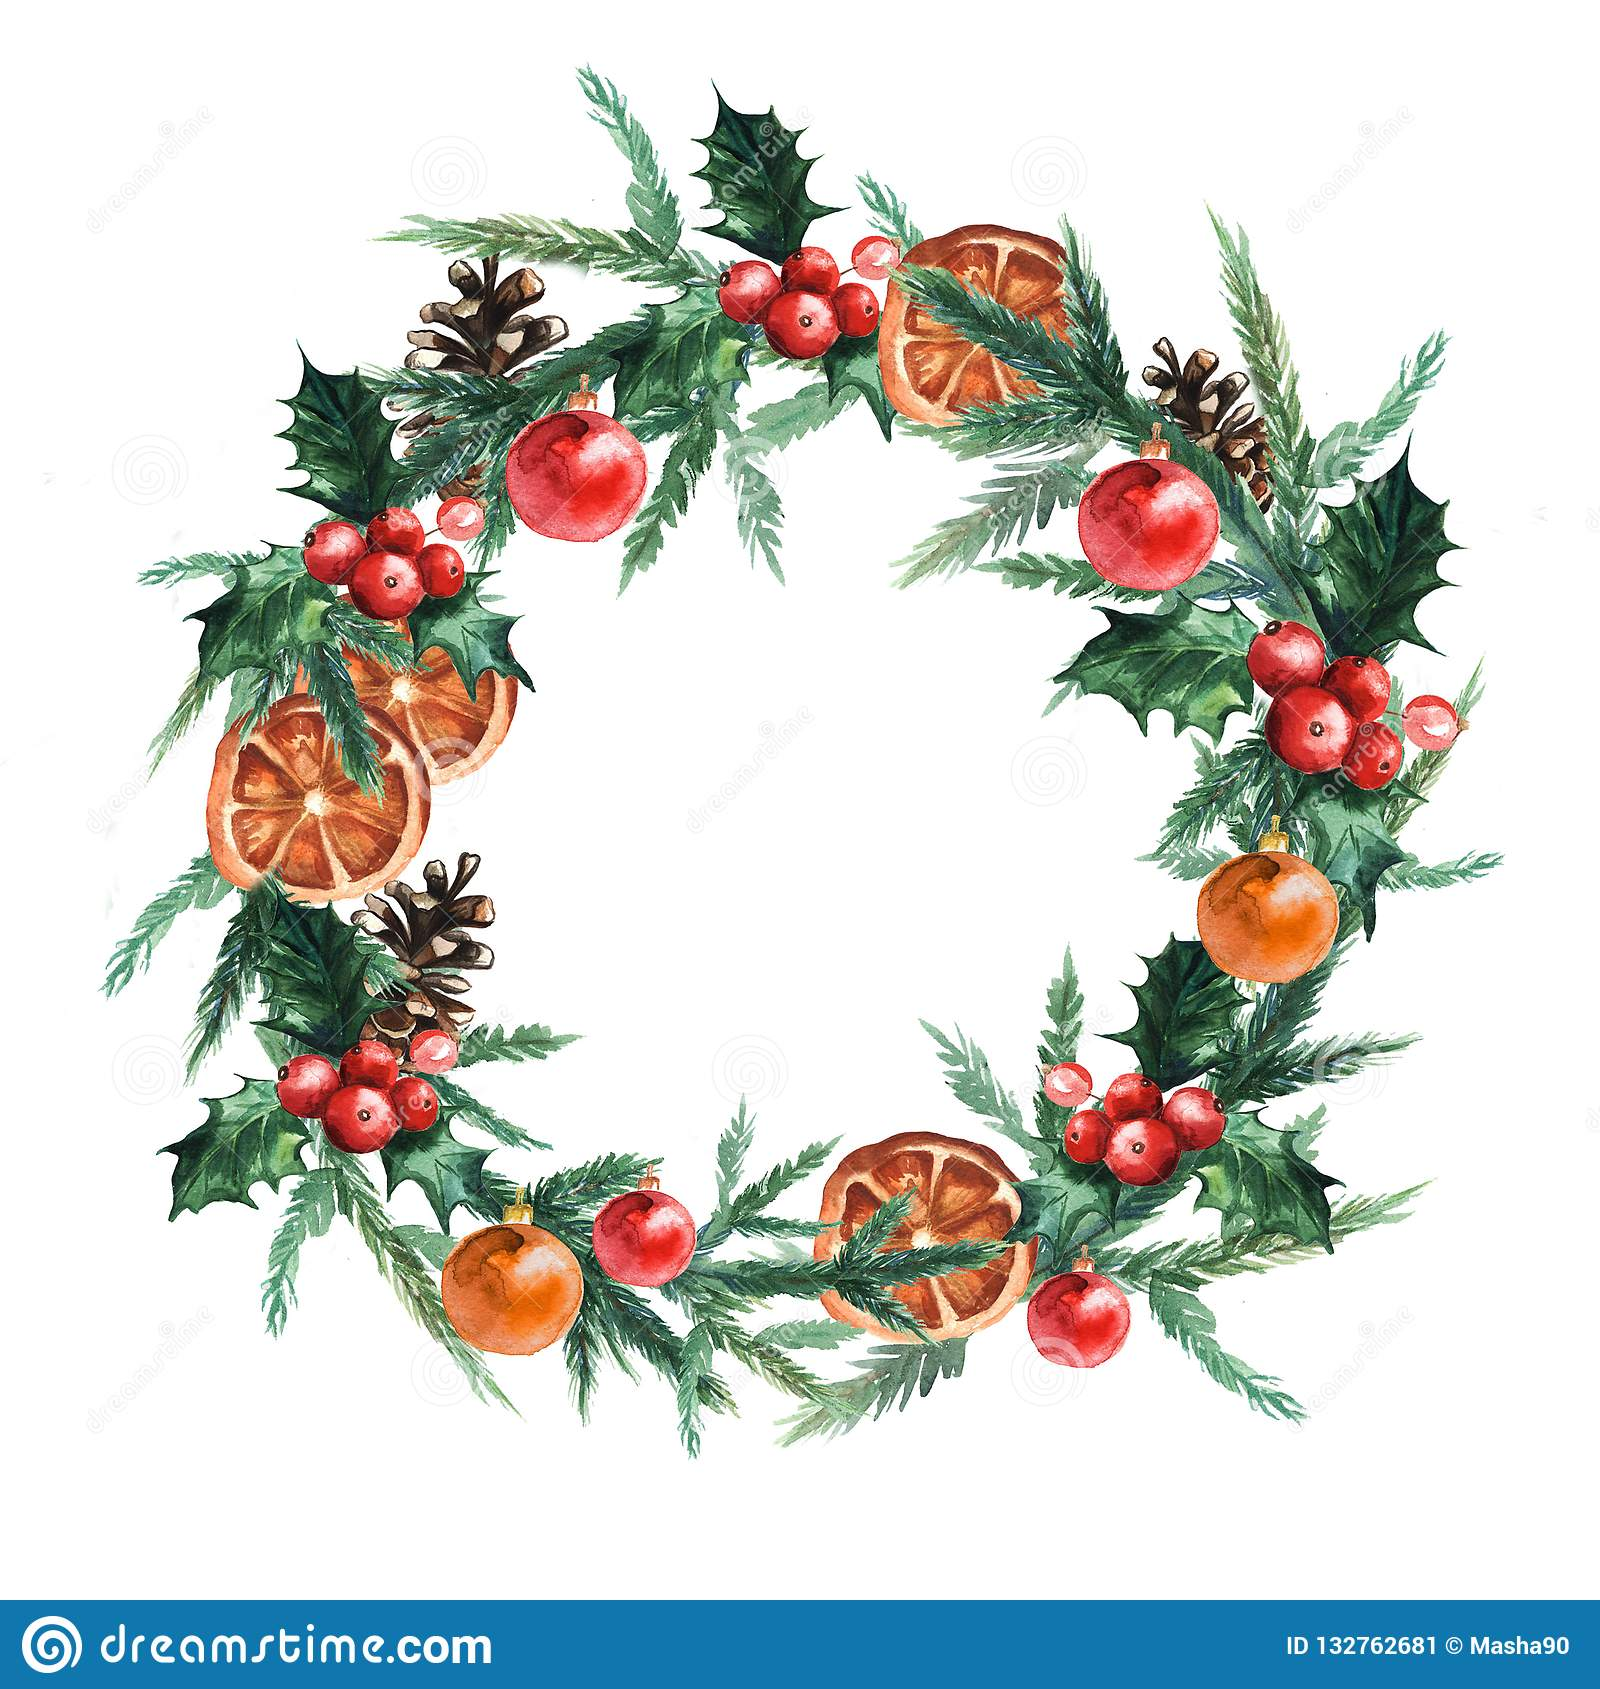 Watercolor Christmas wreath with christmas balls, pinecone, misletoe, oranges and branches of Christmas trees.